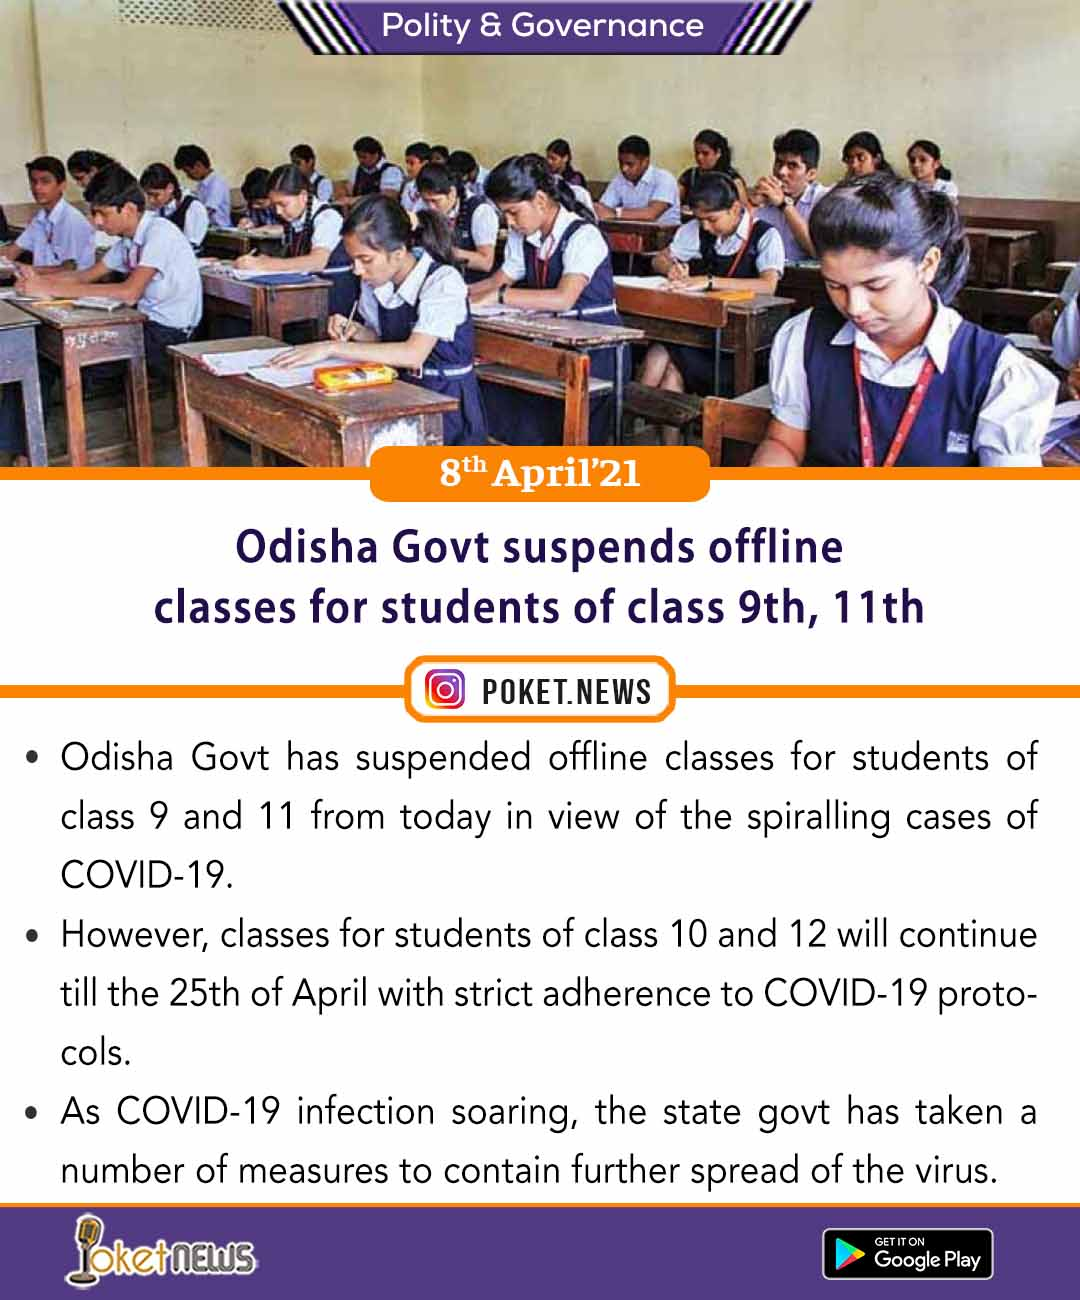 Odisha Govt suspends offline classes for students of class 9th, 11th